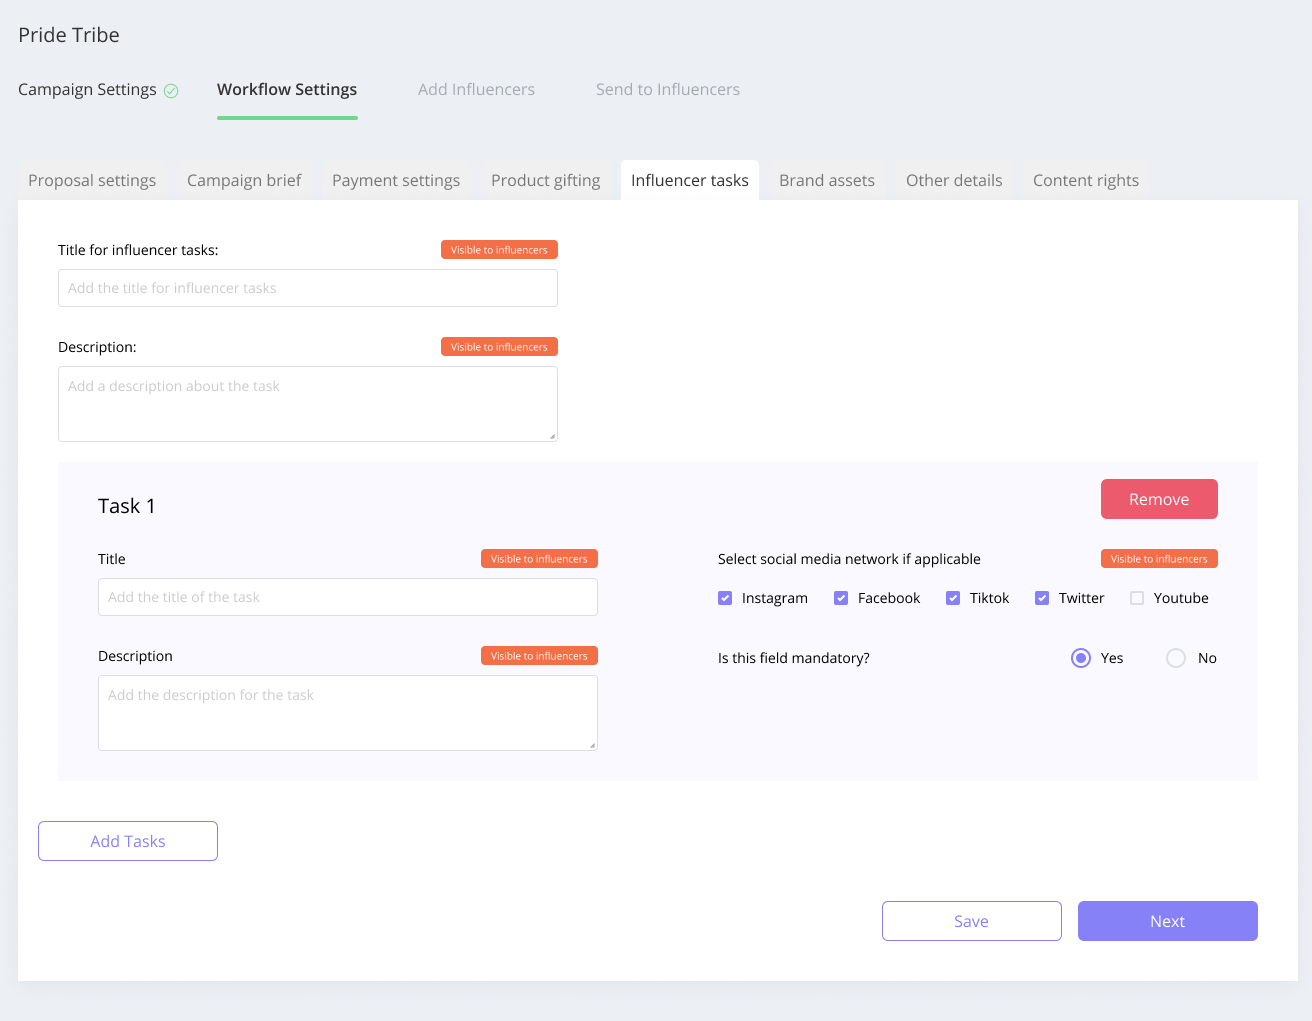 Affable lets you configure the tasks that the Influencers are supposed to complete for a campaign